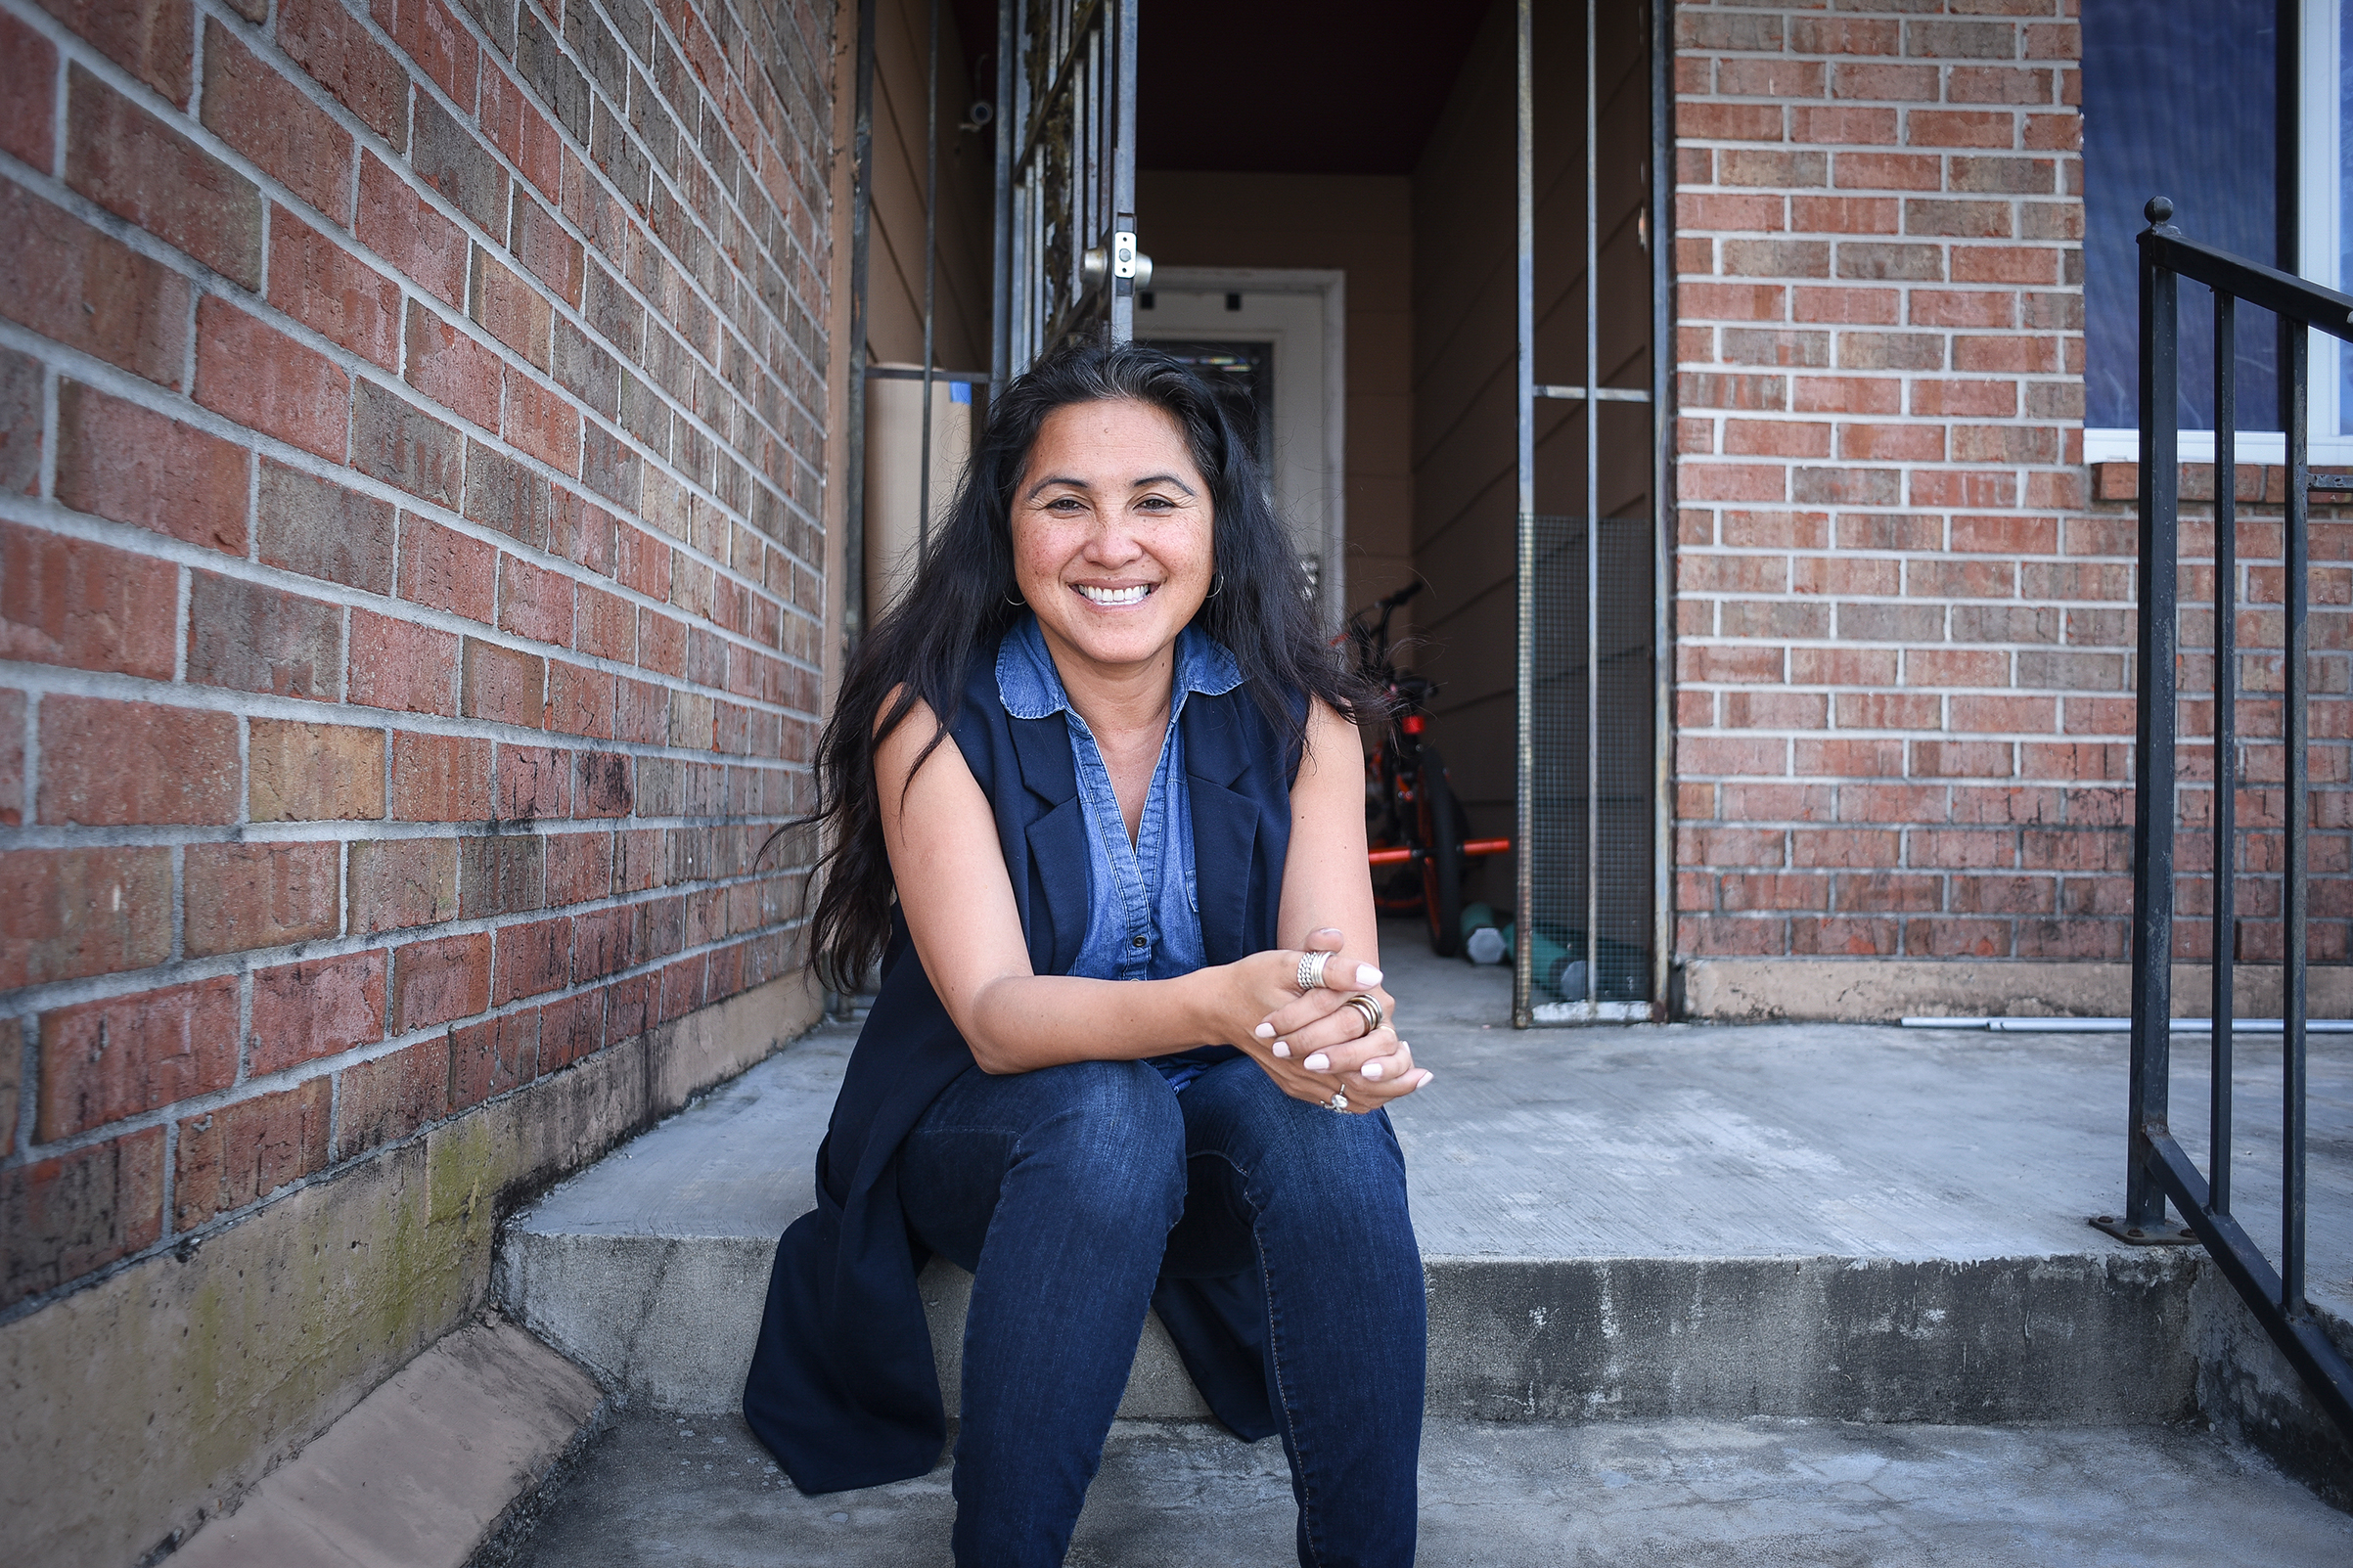 Cyndi Nguyen, who won a seat on the City Council in last year's election, outside her home in the Village de l'Est neighborhood of New Orleans, March 28, 2018.